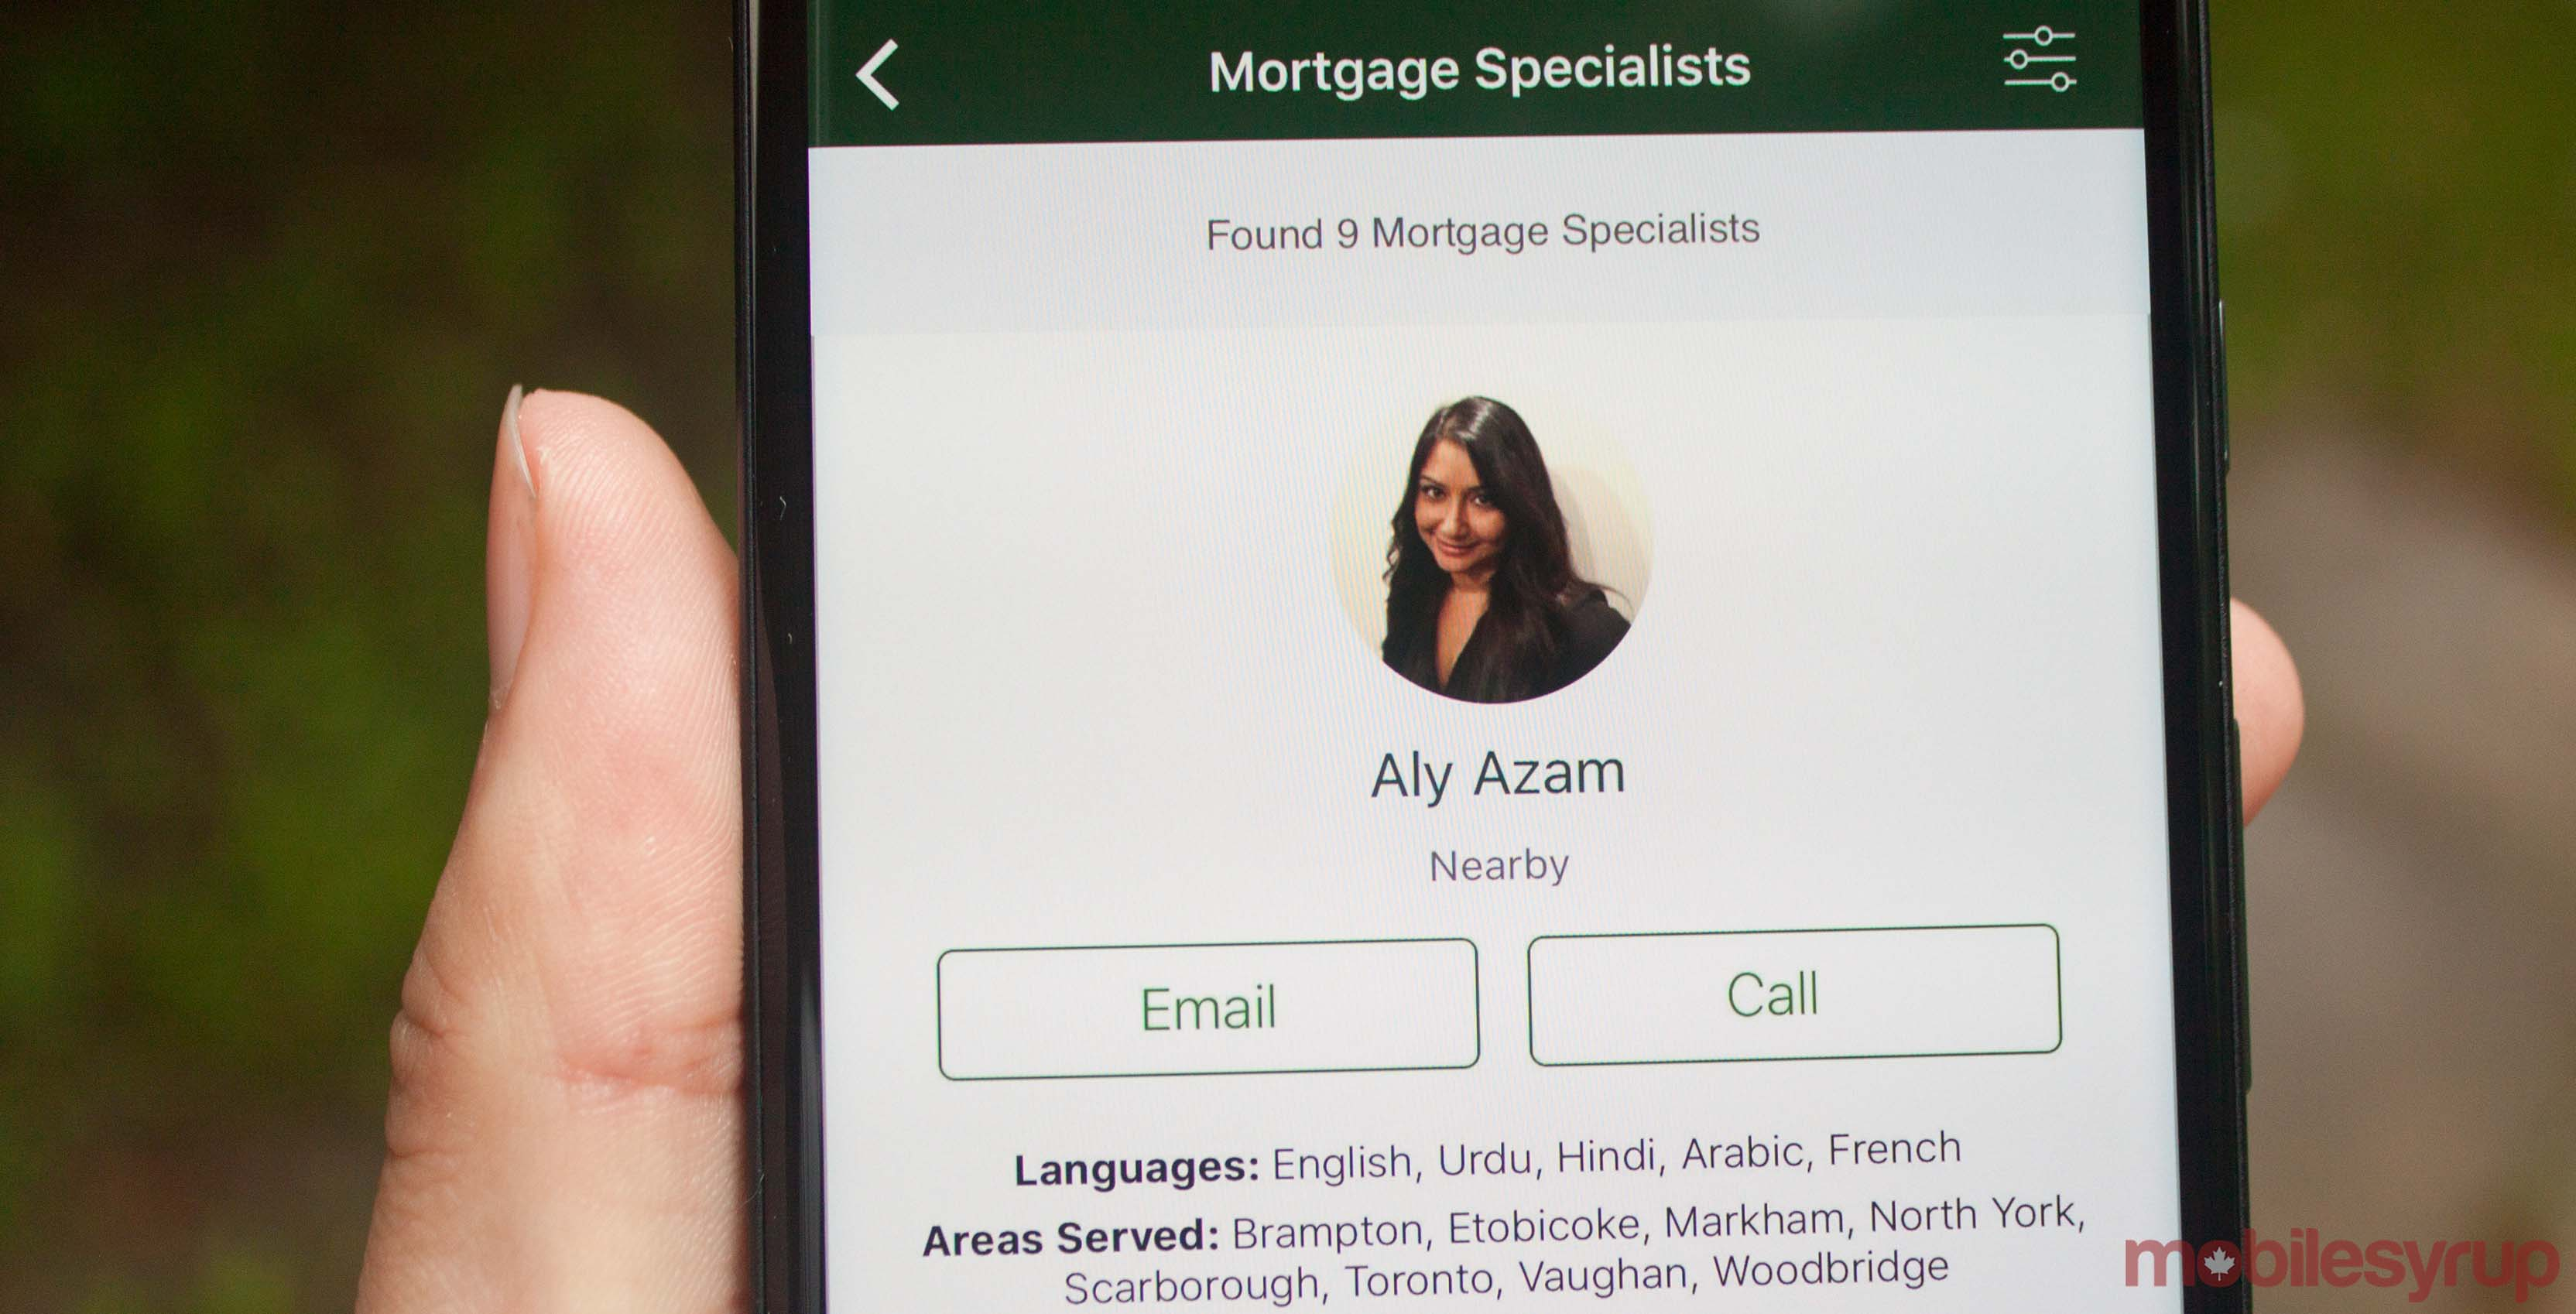 TD Mortgage Specialist connection